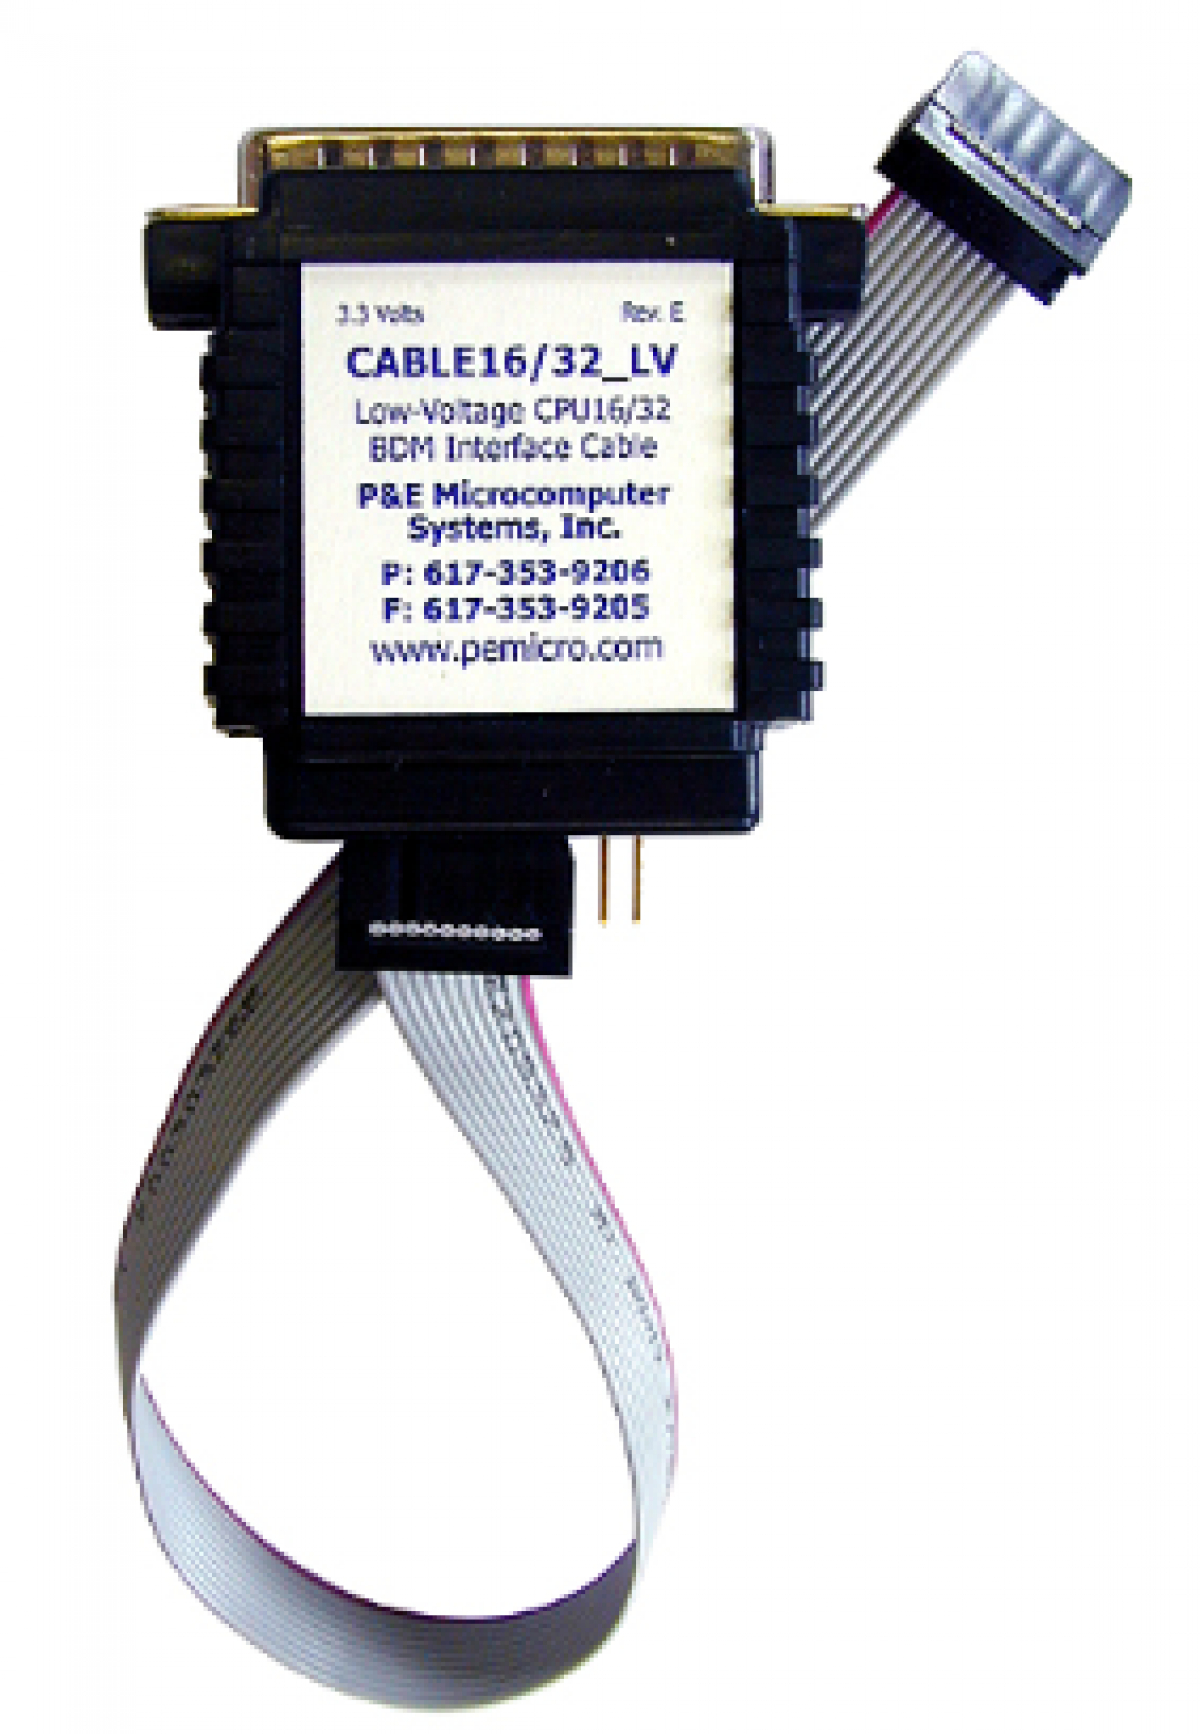 CABLE 16_32LV (Discontinued)